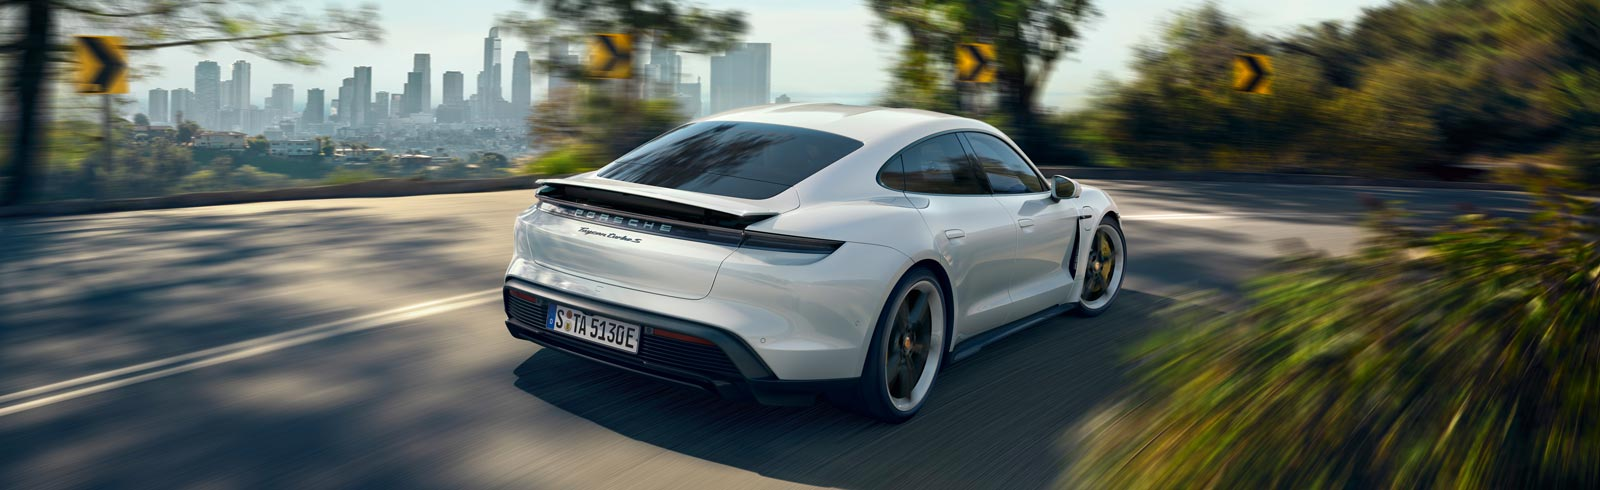 Porsche Taycan Turbo receives an EPA-rated range of 201 miles (323.5 km)